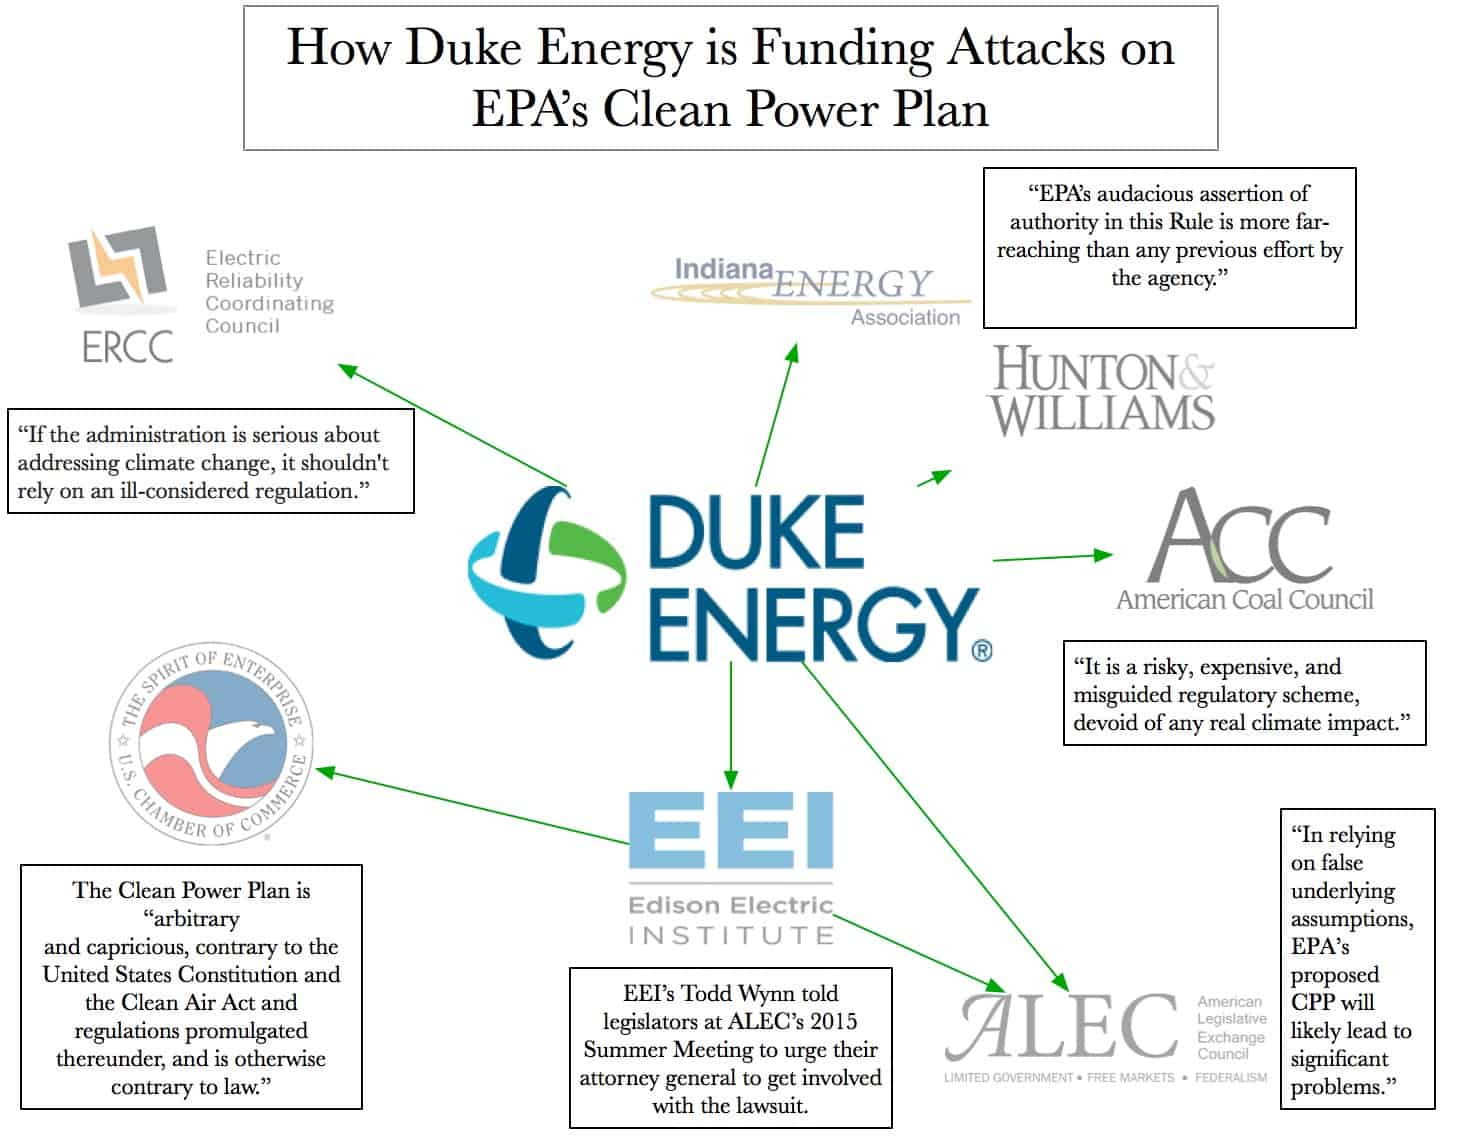 Duke Energy Attacks on Clean Power Plan